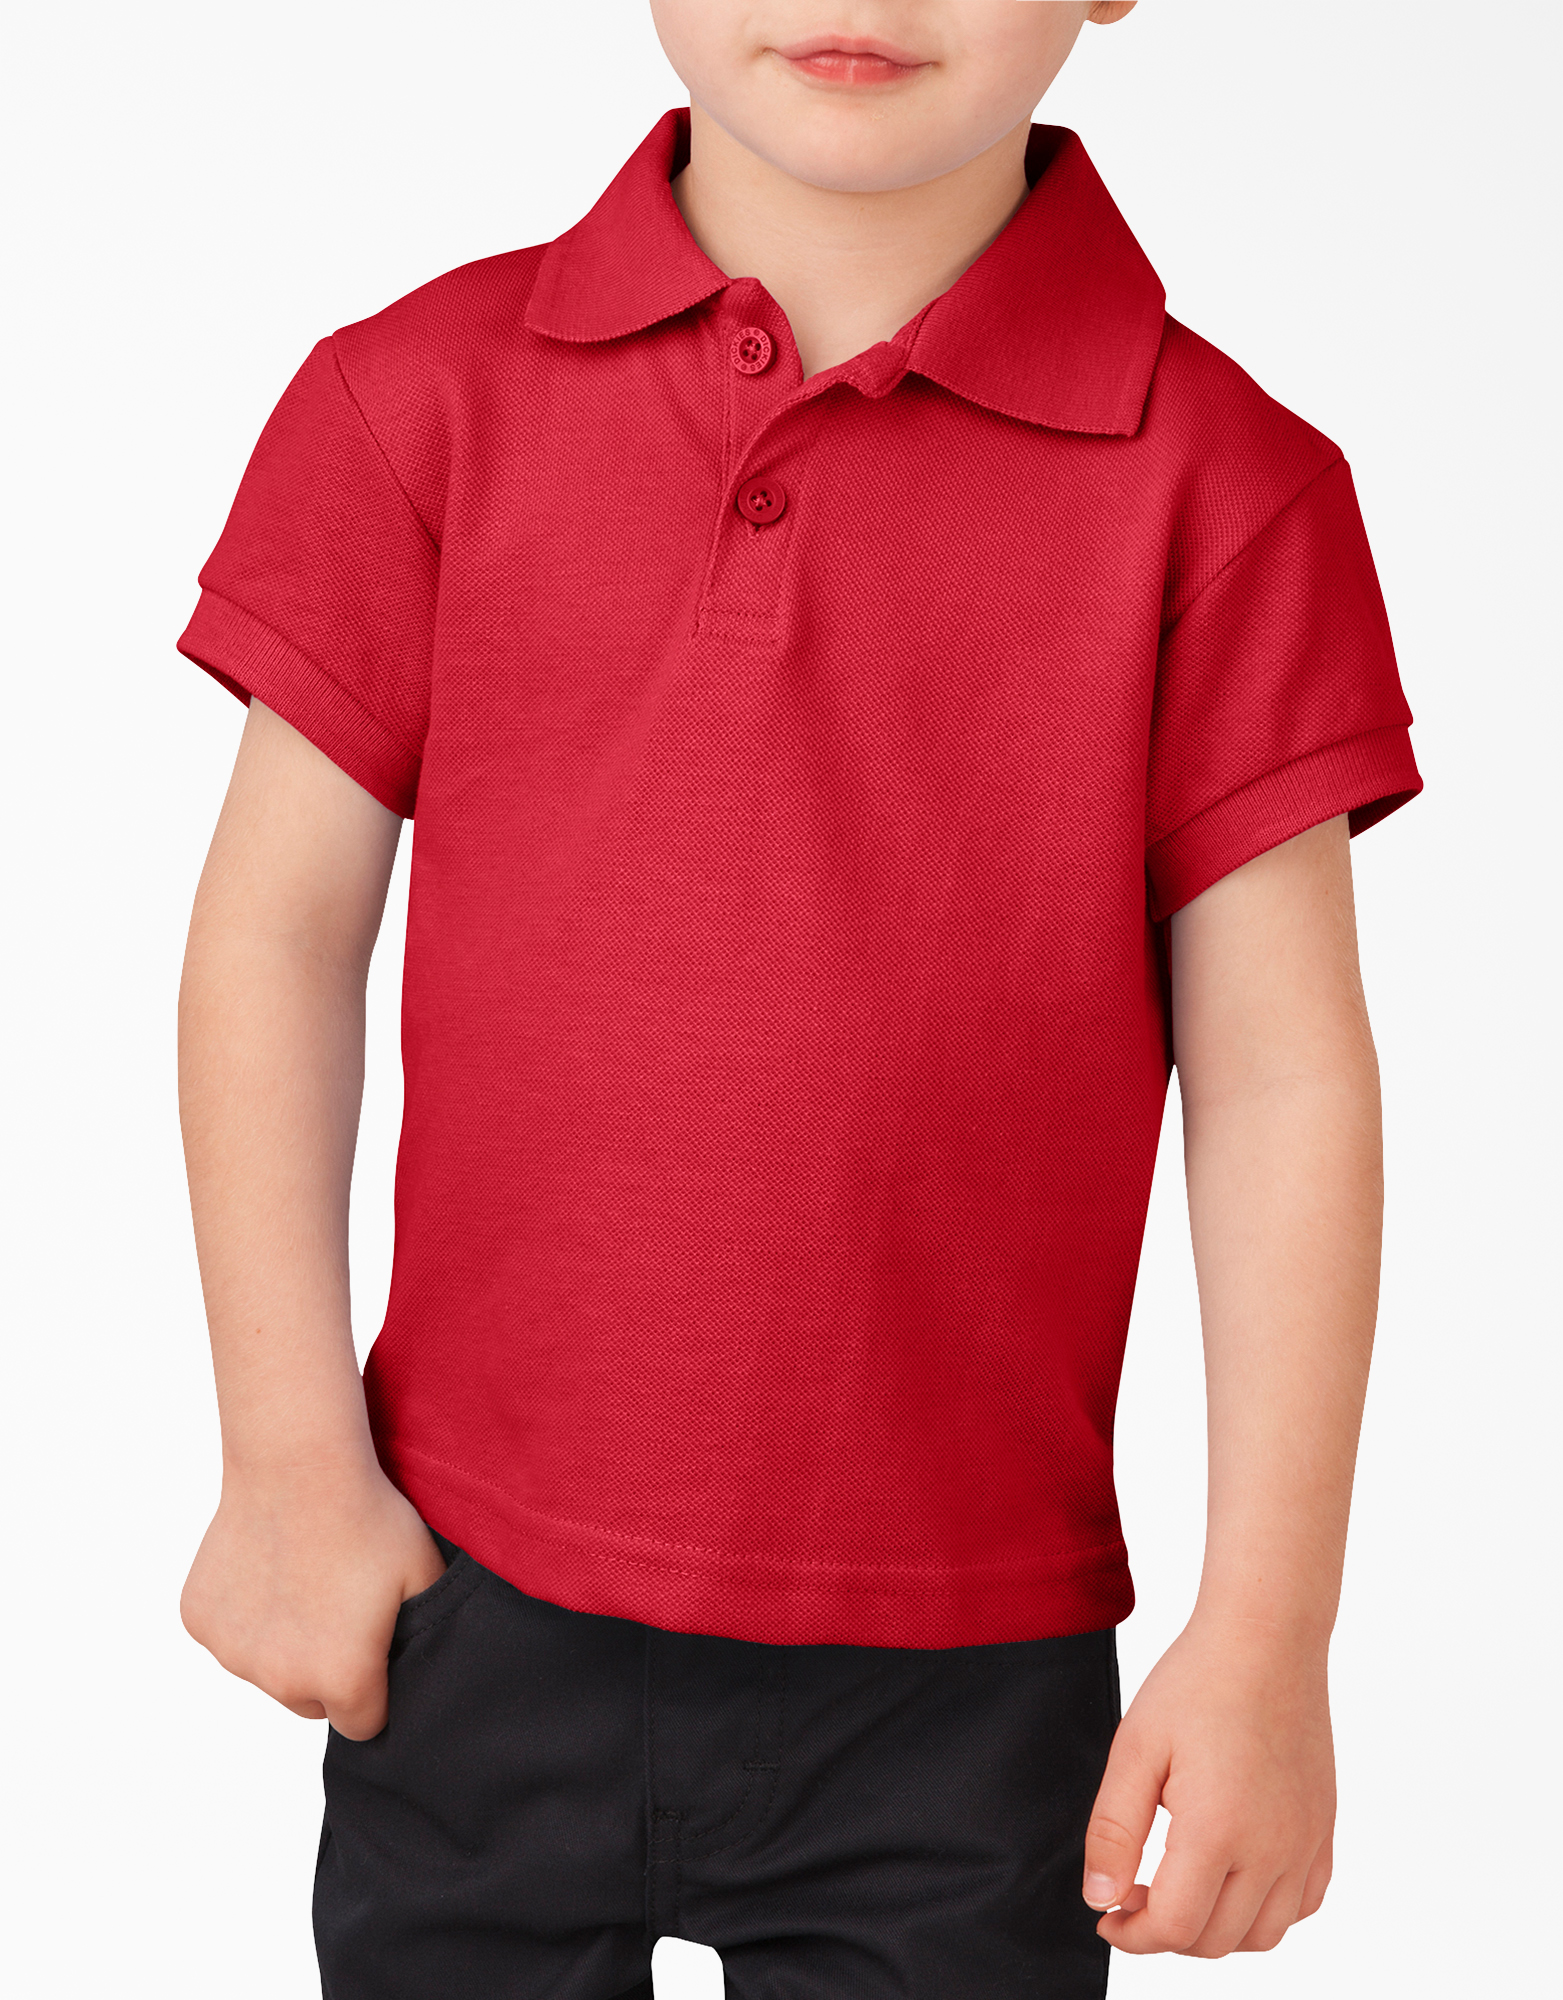 Toddler Short Sleeve Piqué Polo Shirt - English Red (ER)